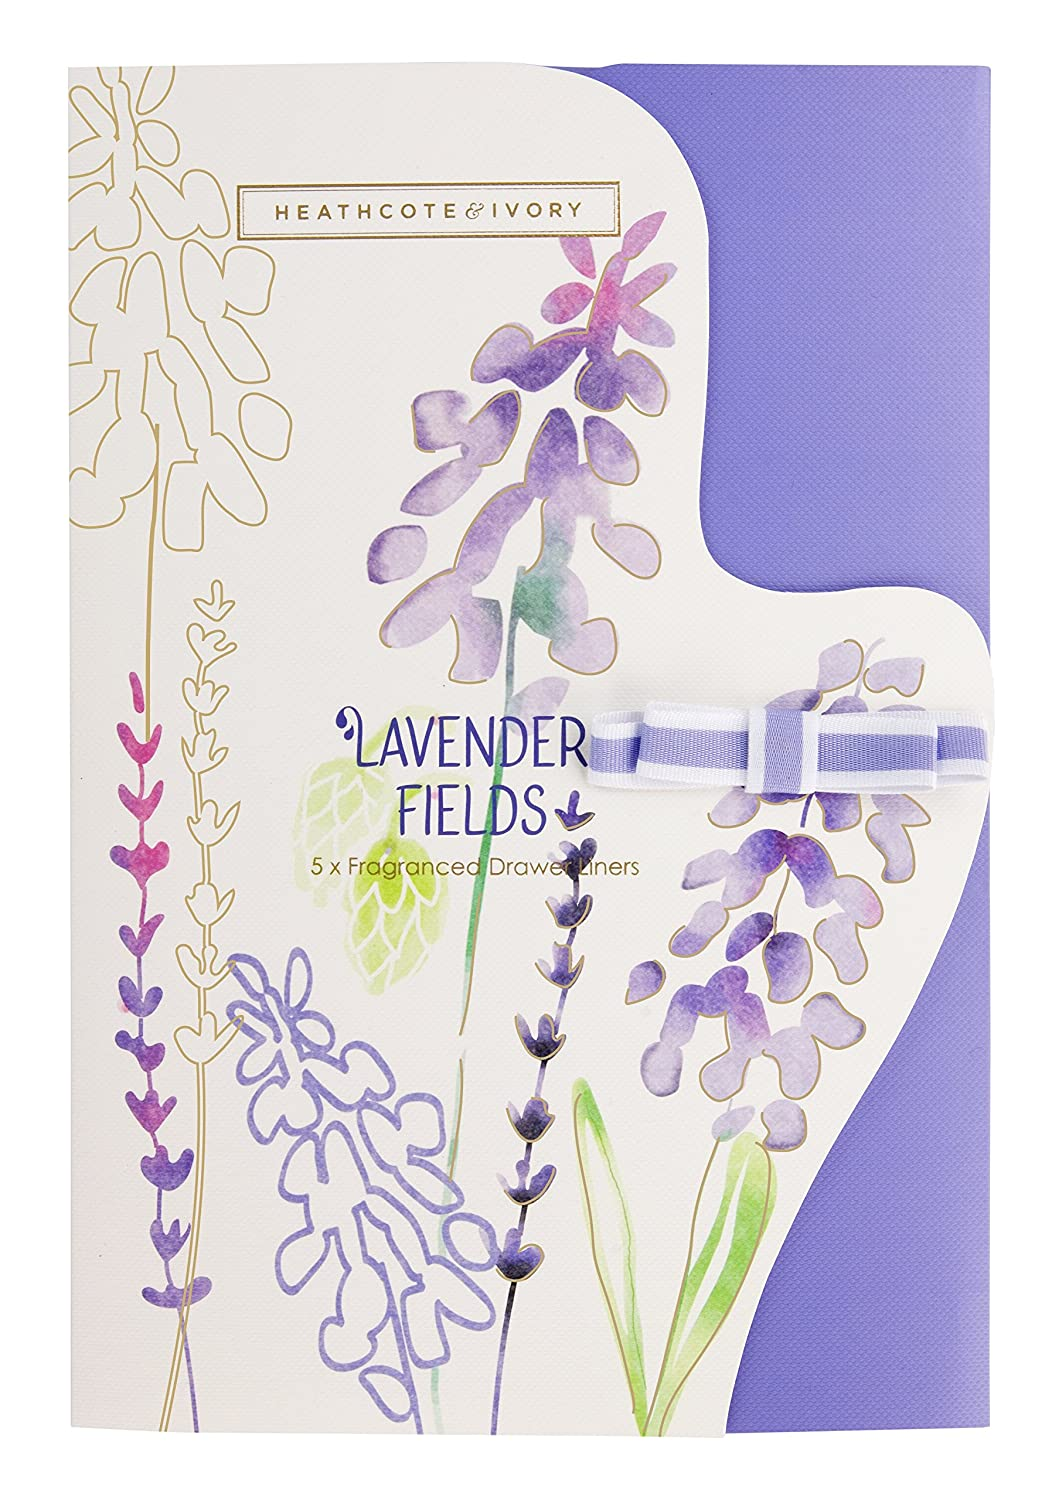 Heathcote & Ivory Lavender Fields Fragranced Drawer Liners FG5704